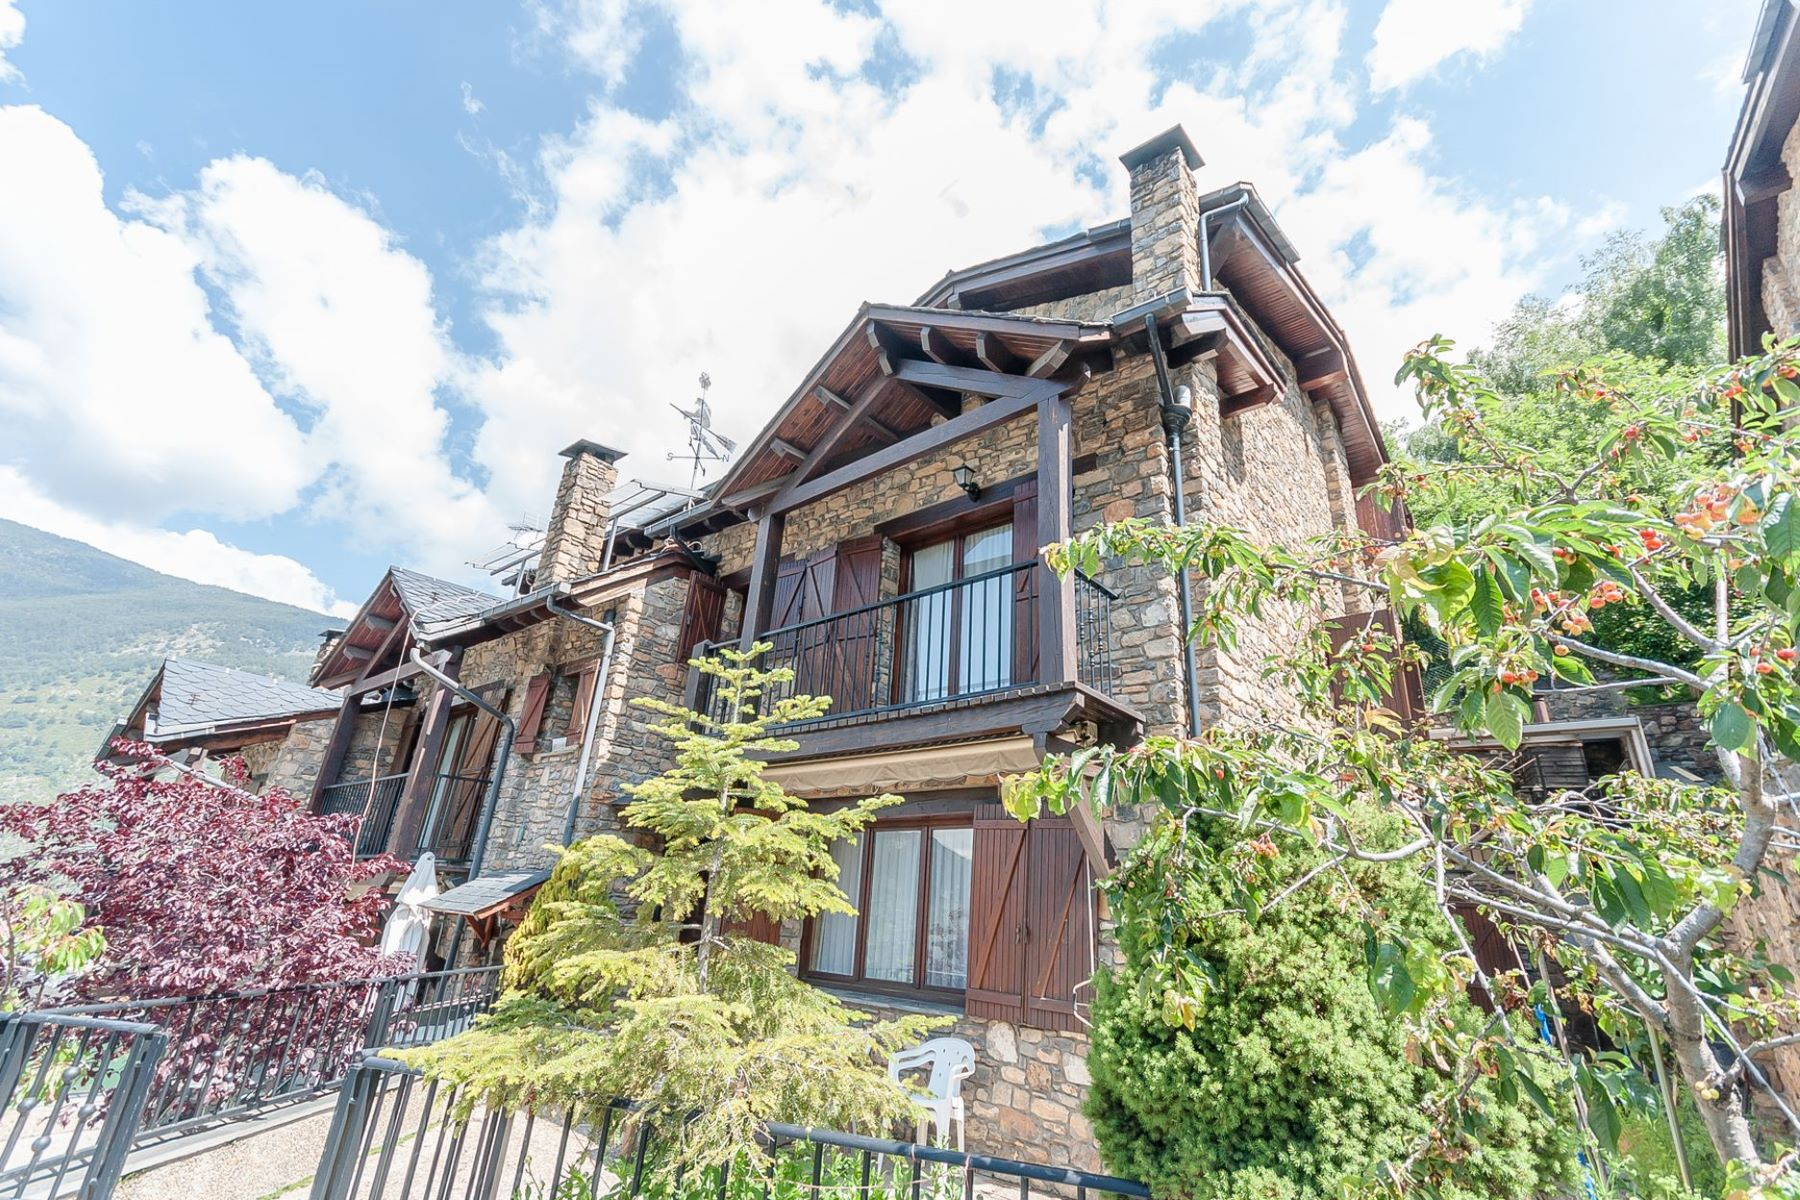 단독 가정 주택 용 매매 에 Attached for sale in Encamp Encamp, Encamp, AD200 Andorra